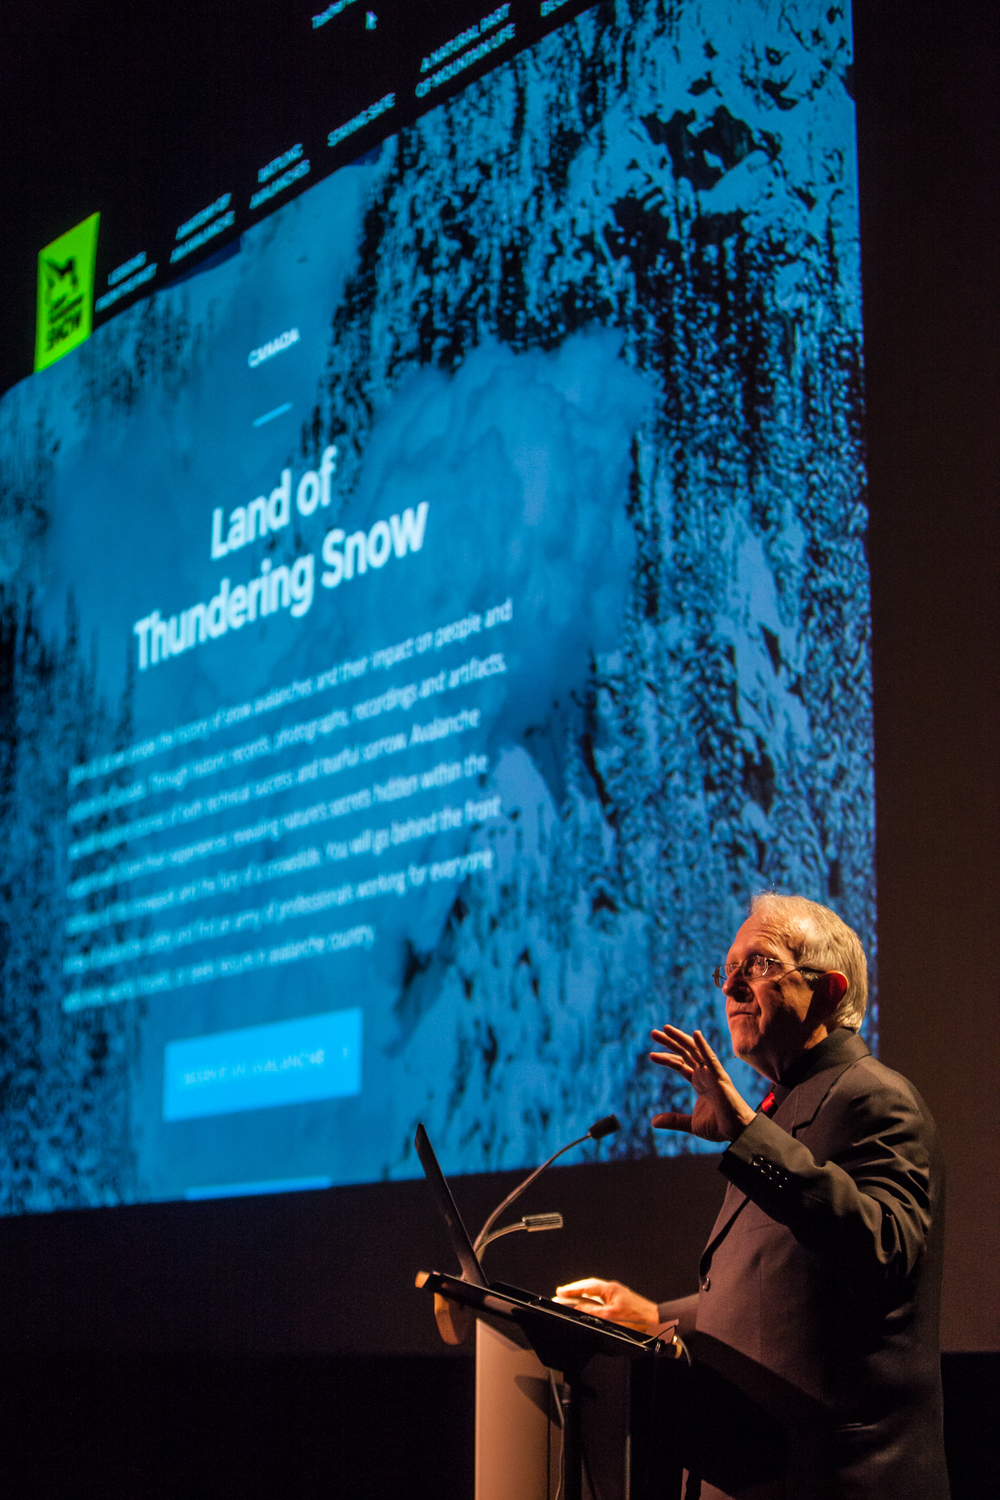 Dr. John Woods, lead researcher and writer of Land of Thundering Snow presents the website at a launch event at Revelstoke Performing Arts Centre, March 4, 2015.